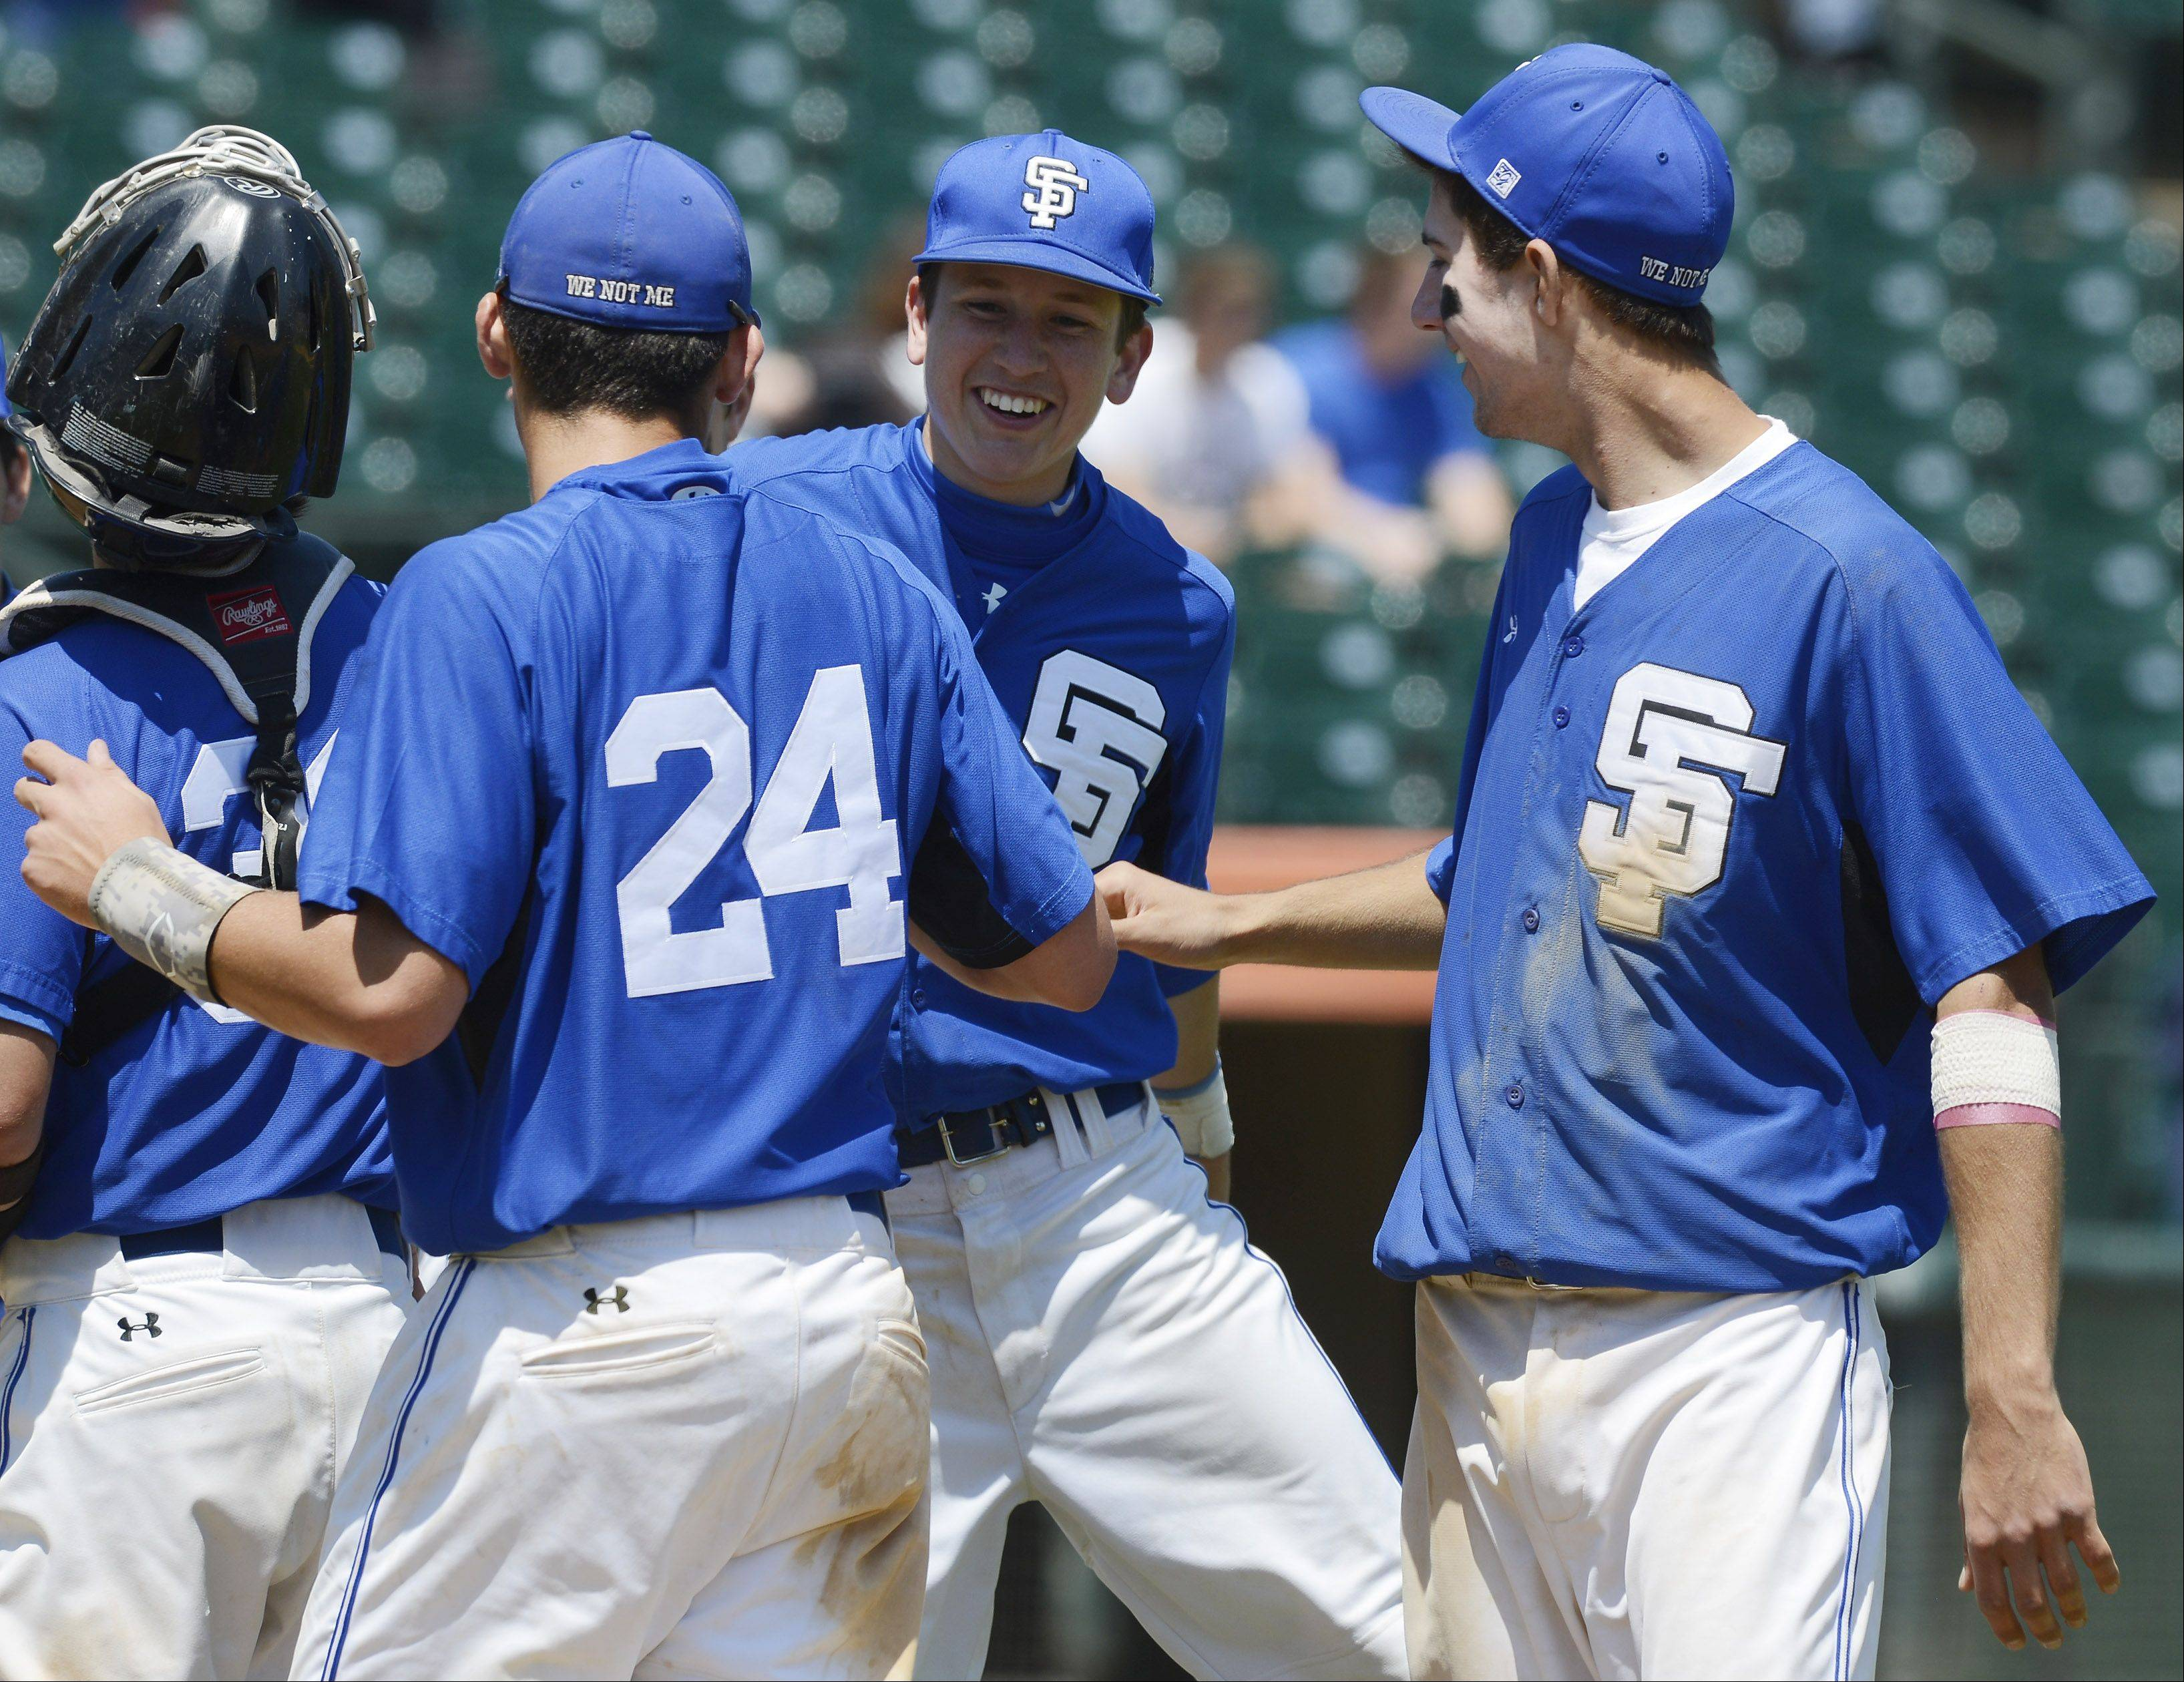 Left to right, St. Francis players Jason Sullivan, Jack Ciombor and Tim Zettinger celebrate their team�s victory over Grayslake Central during the Class 3A state baseball semifinal at Silver Cross Field in Joliet on Friday.